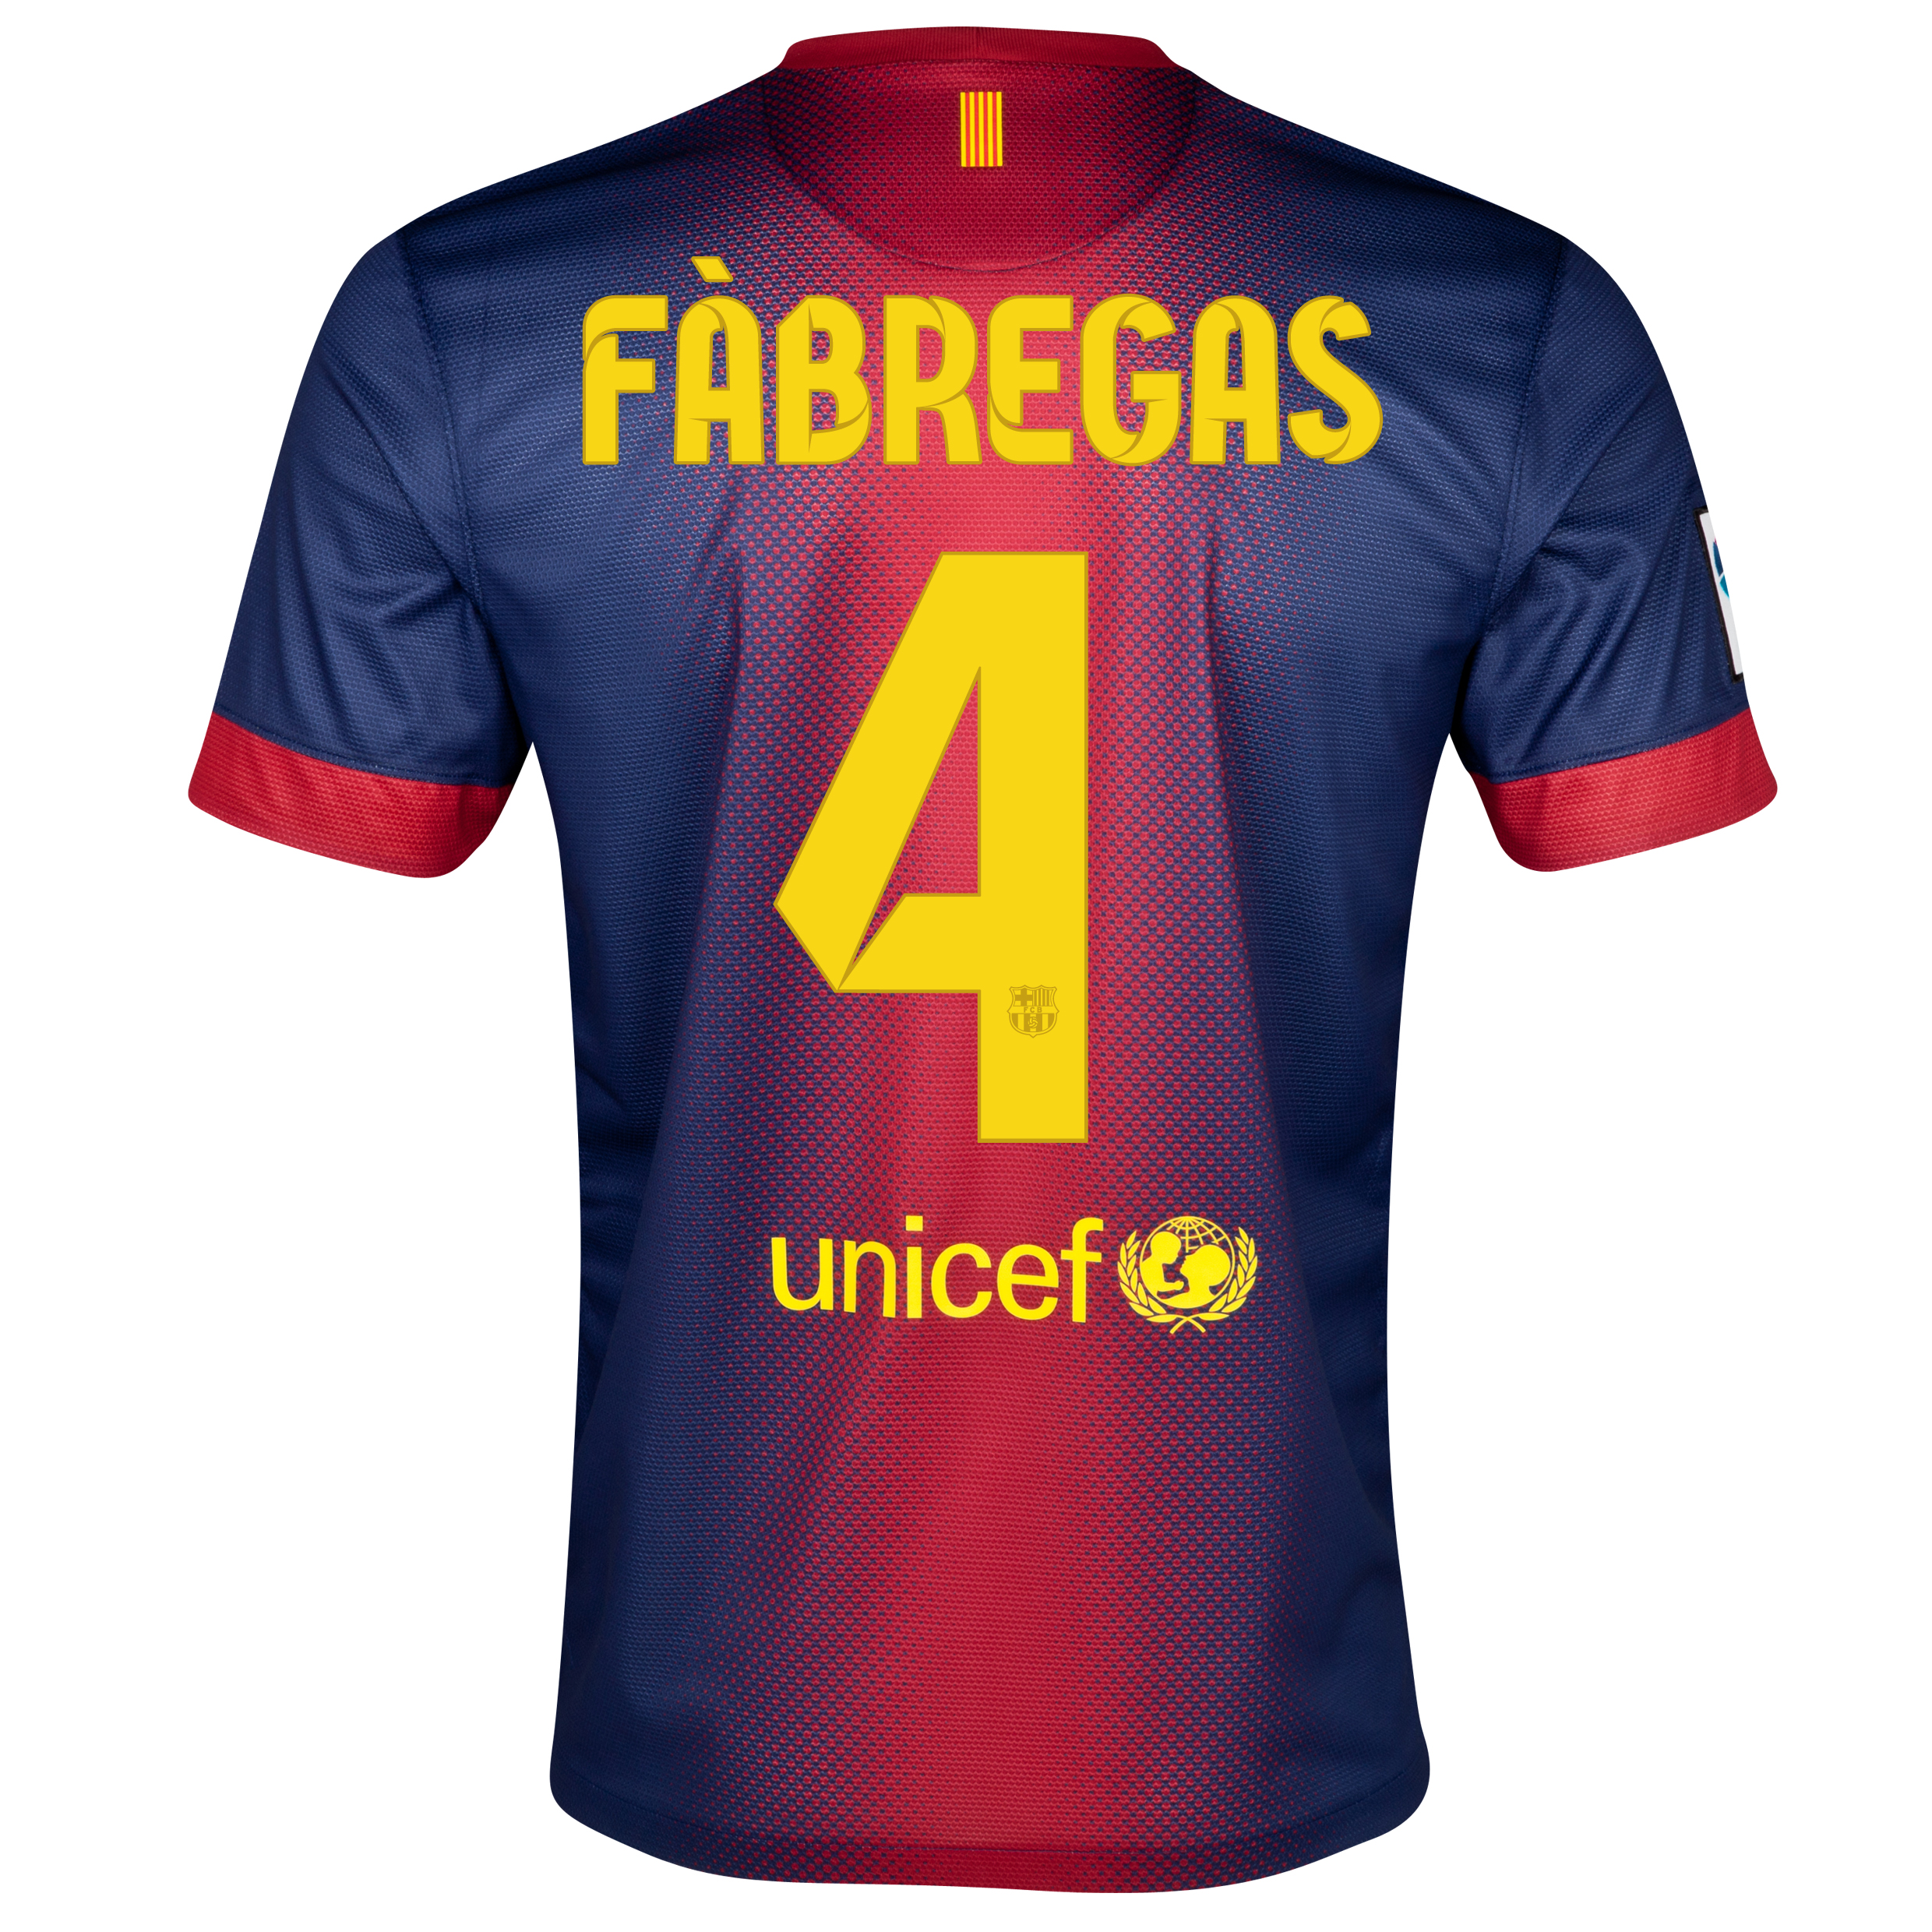 Barcelona Home Shirt 2012/13 - Youths with Fabregas 4 printing